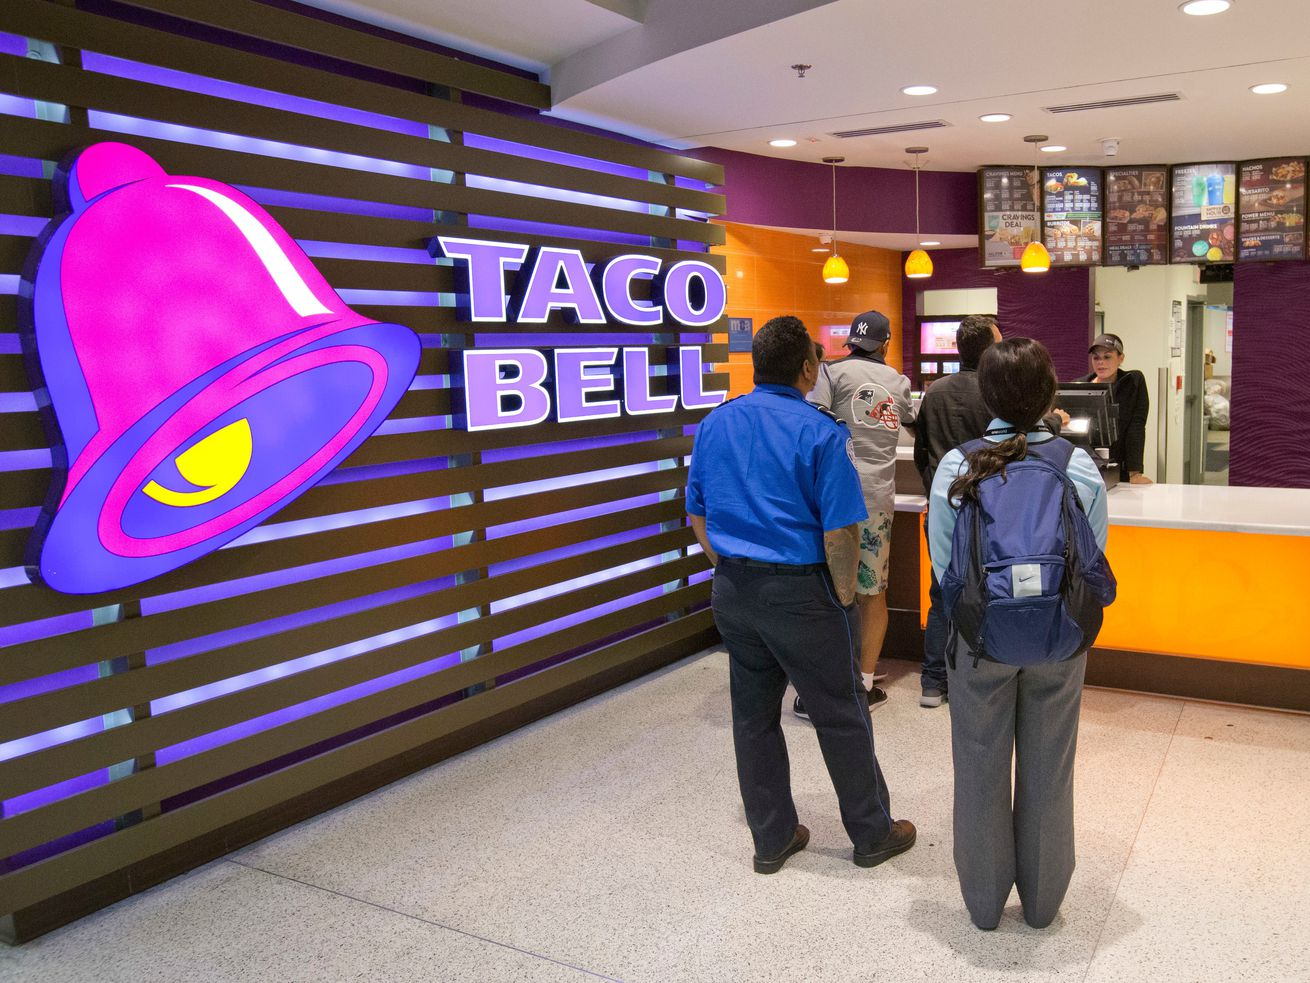 Coming soon to Taco Bell: fake meat